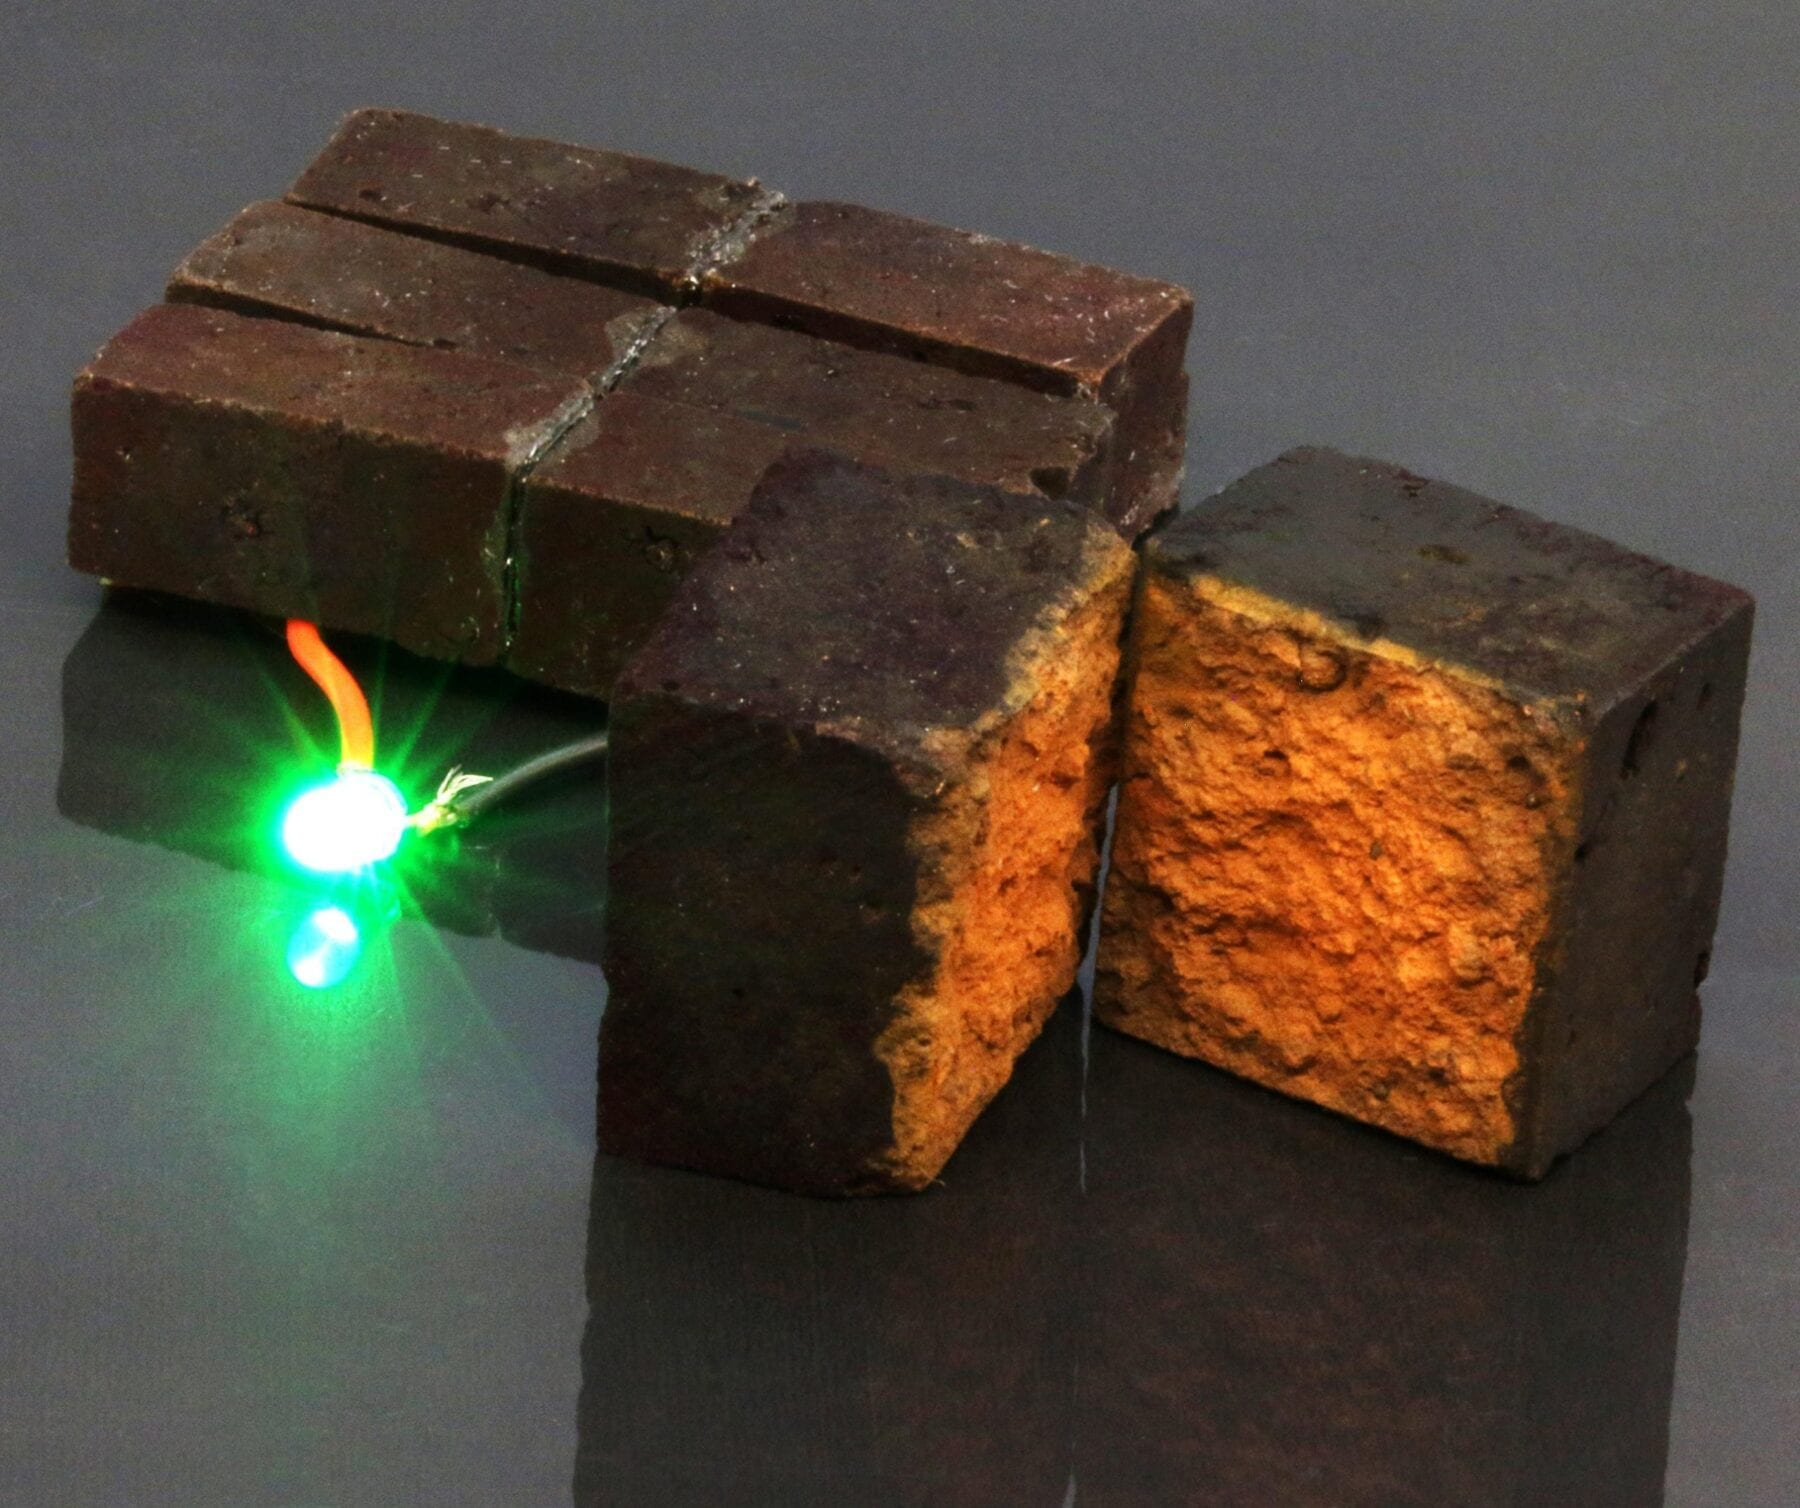 """Chemists in Arts & Sciences have developed a method to make or modify """"smart bricks"""" that can store energy until required for powering devices. (Image: D'Arcy laboratory)"""